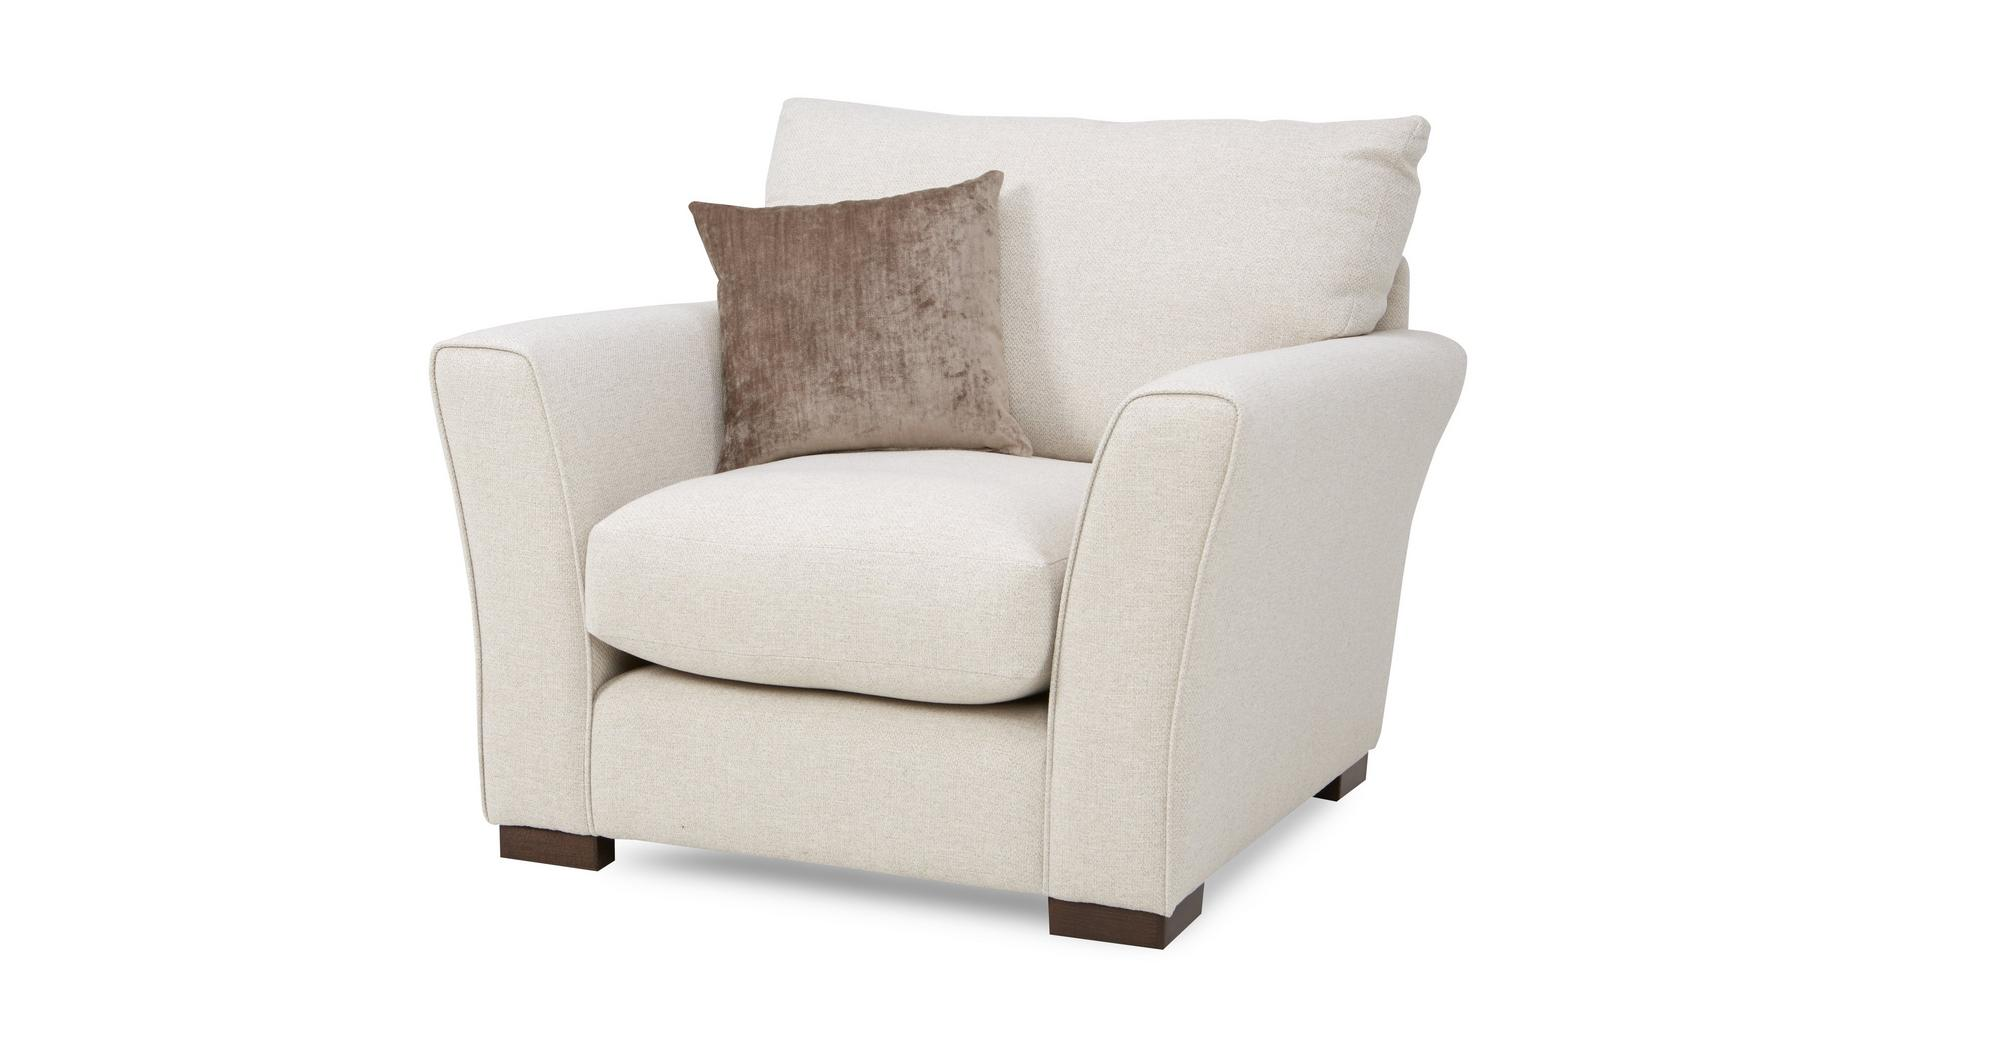 Dfs Dream Natural Cream Fabric Corner Sofa 2 X Armchairs